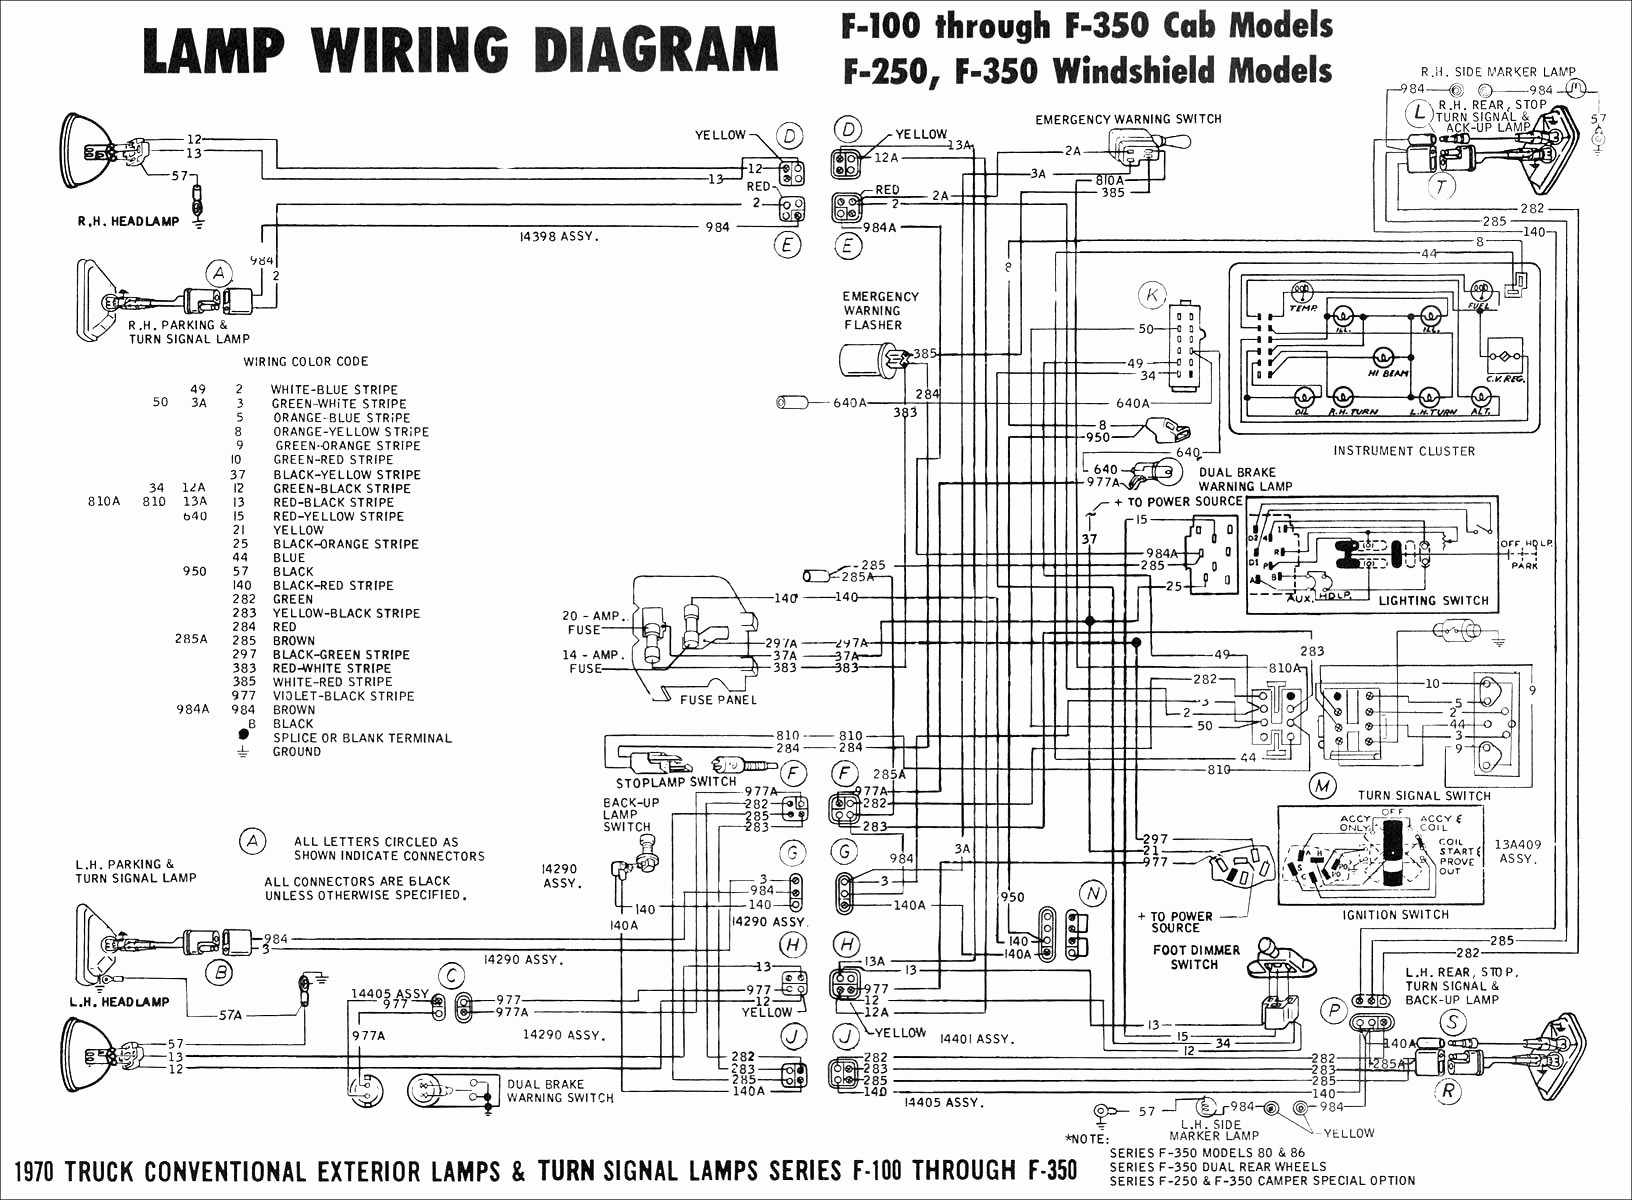 Wiring Diagram for Tail Lights 1994 ford F 350 Wiring Diagram Tail Lights Also Worksheet and Of Wiring Diagram for Tail Lights